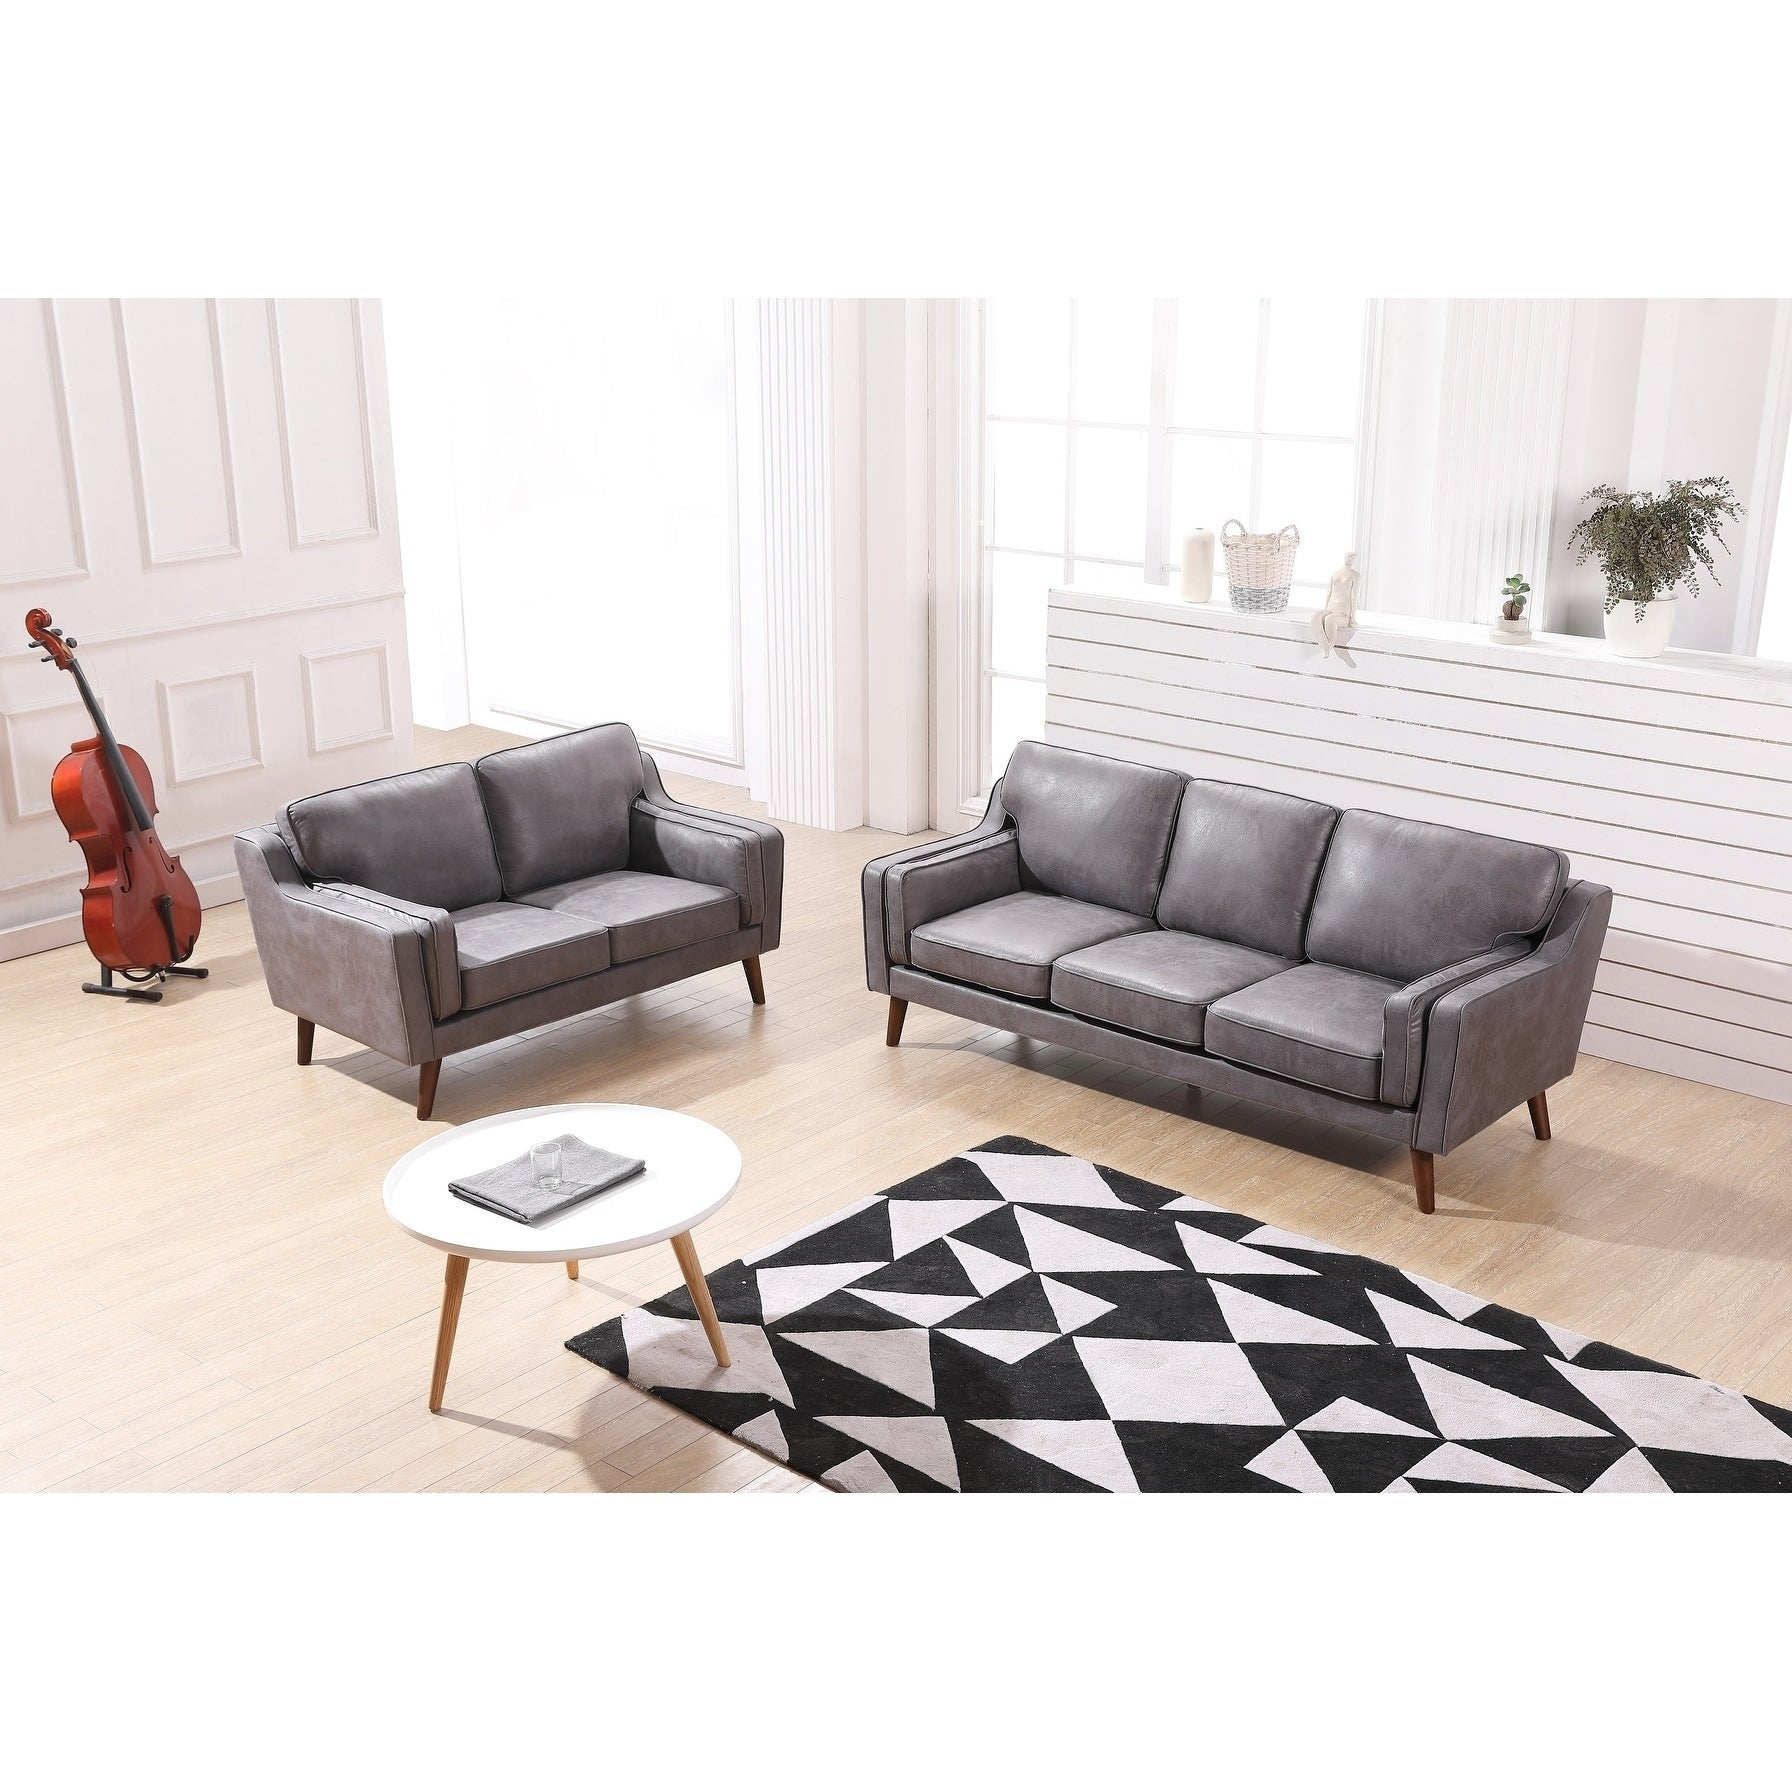 Details about Sofia Mid-Century Air Leather Fabric Sofa Set